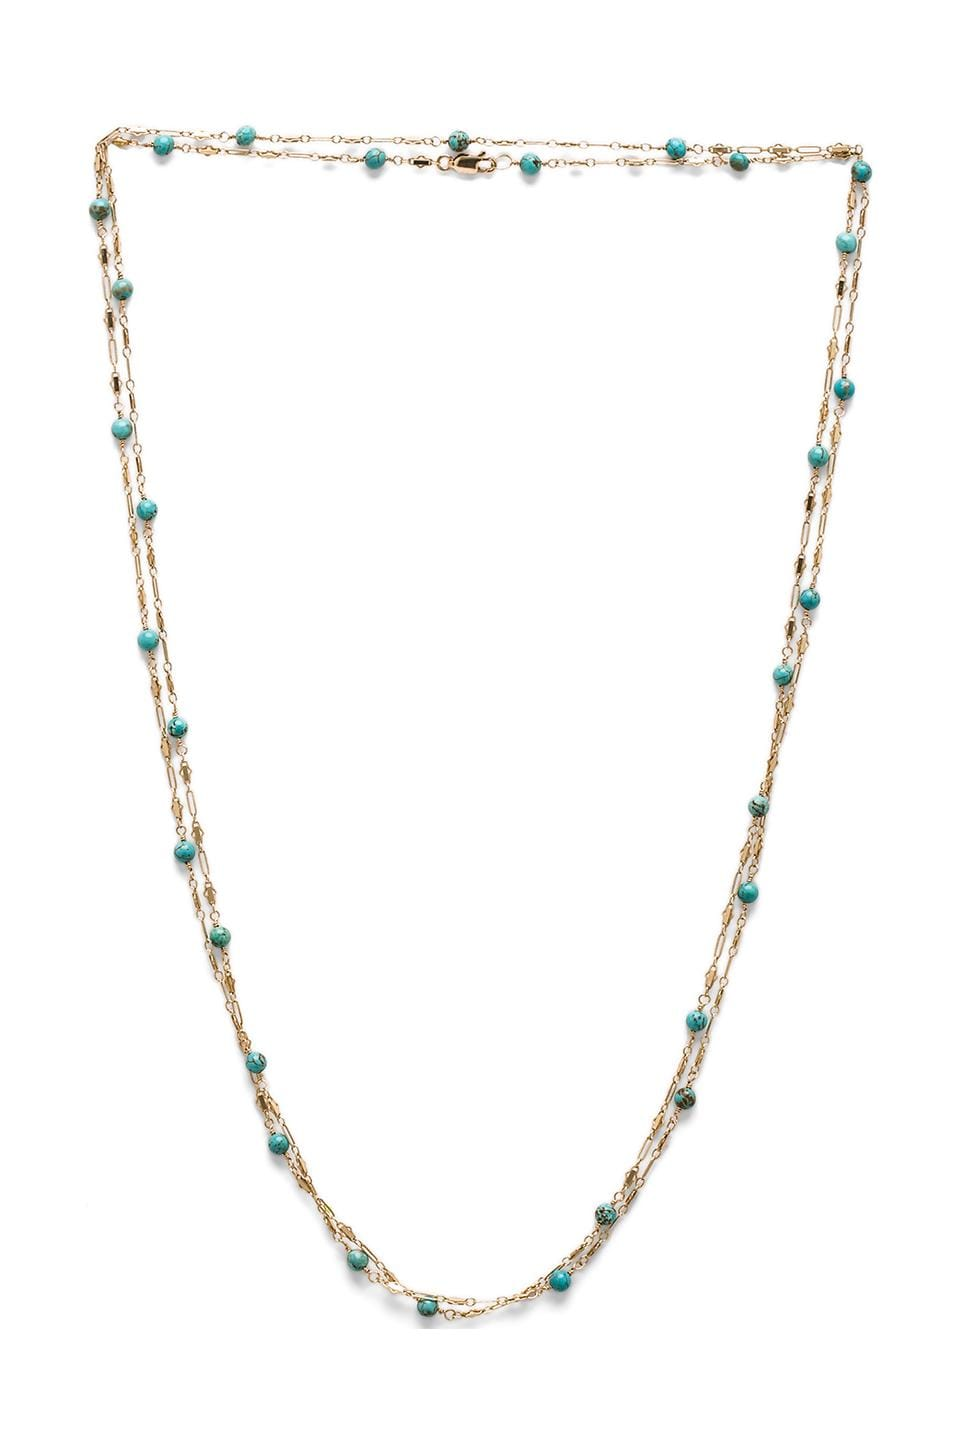 Natalie B Jewelry Baby Boho Wrap Necklace in Turquoise